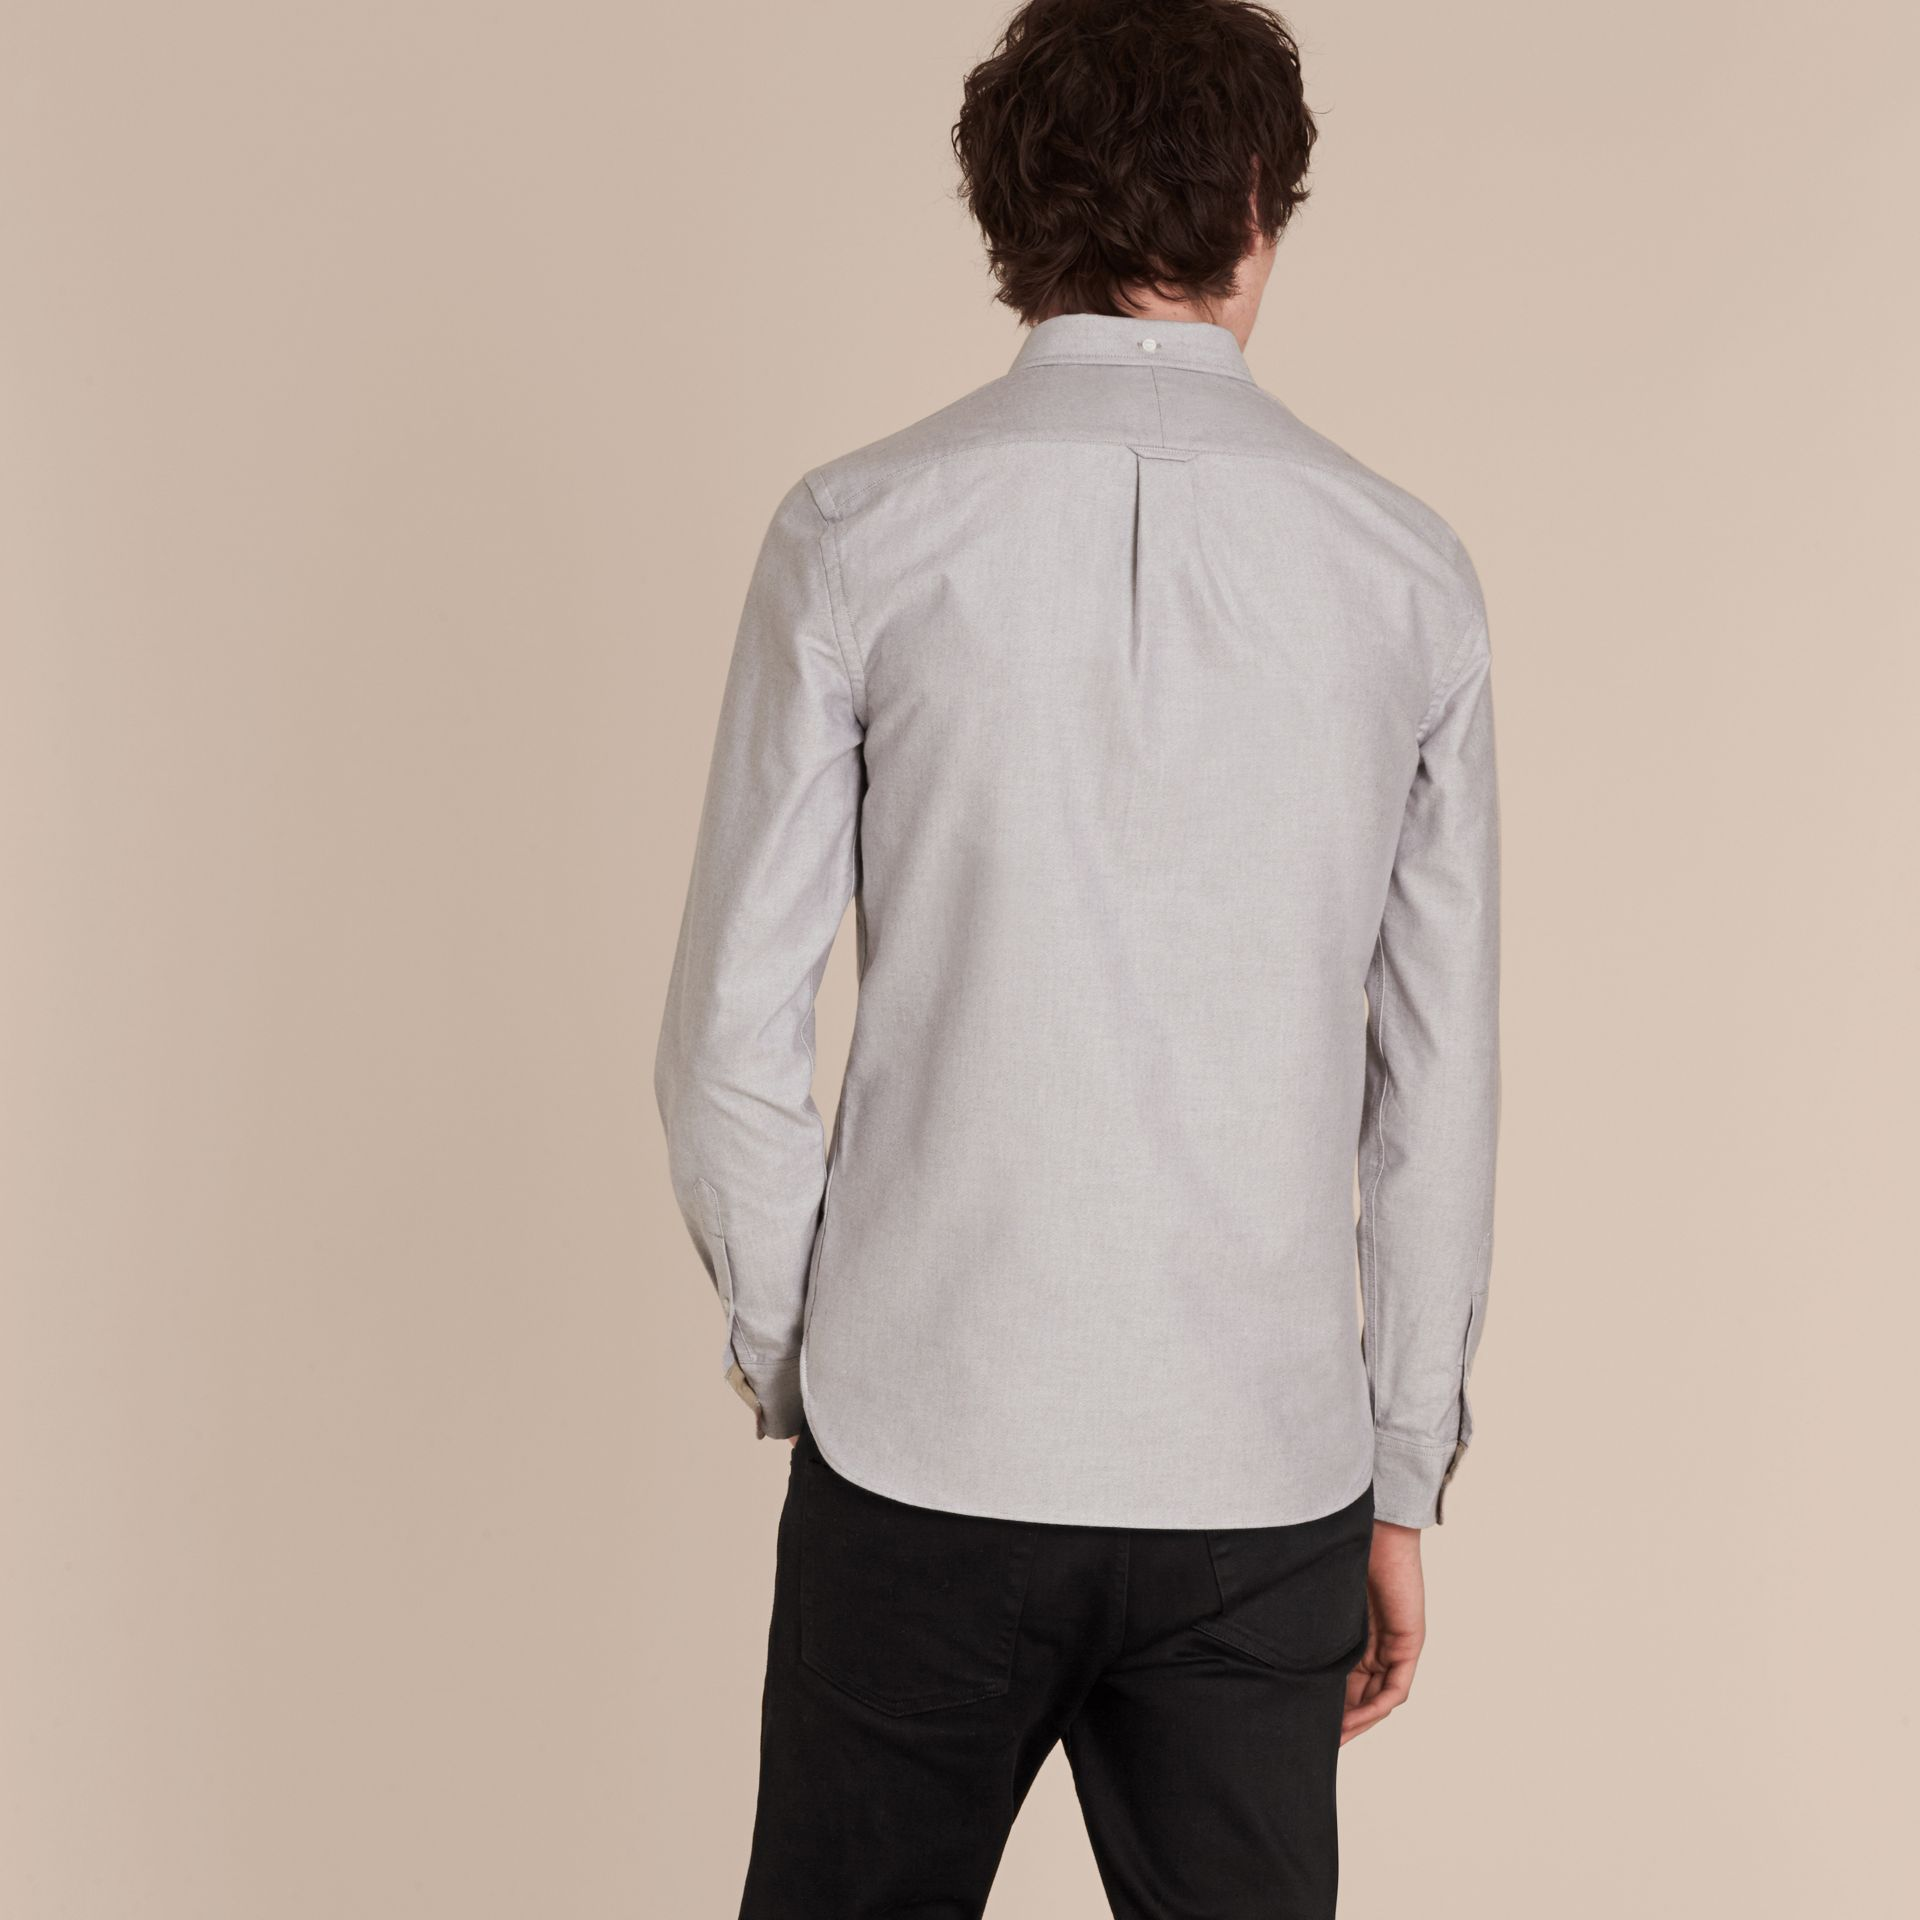 Cotton Oxford Shirt in Charcoal - Men | Burberry - gallery image 3